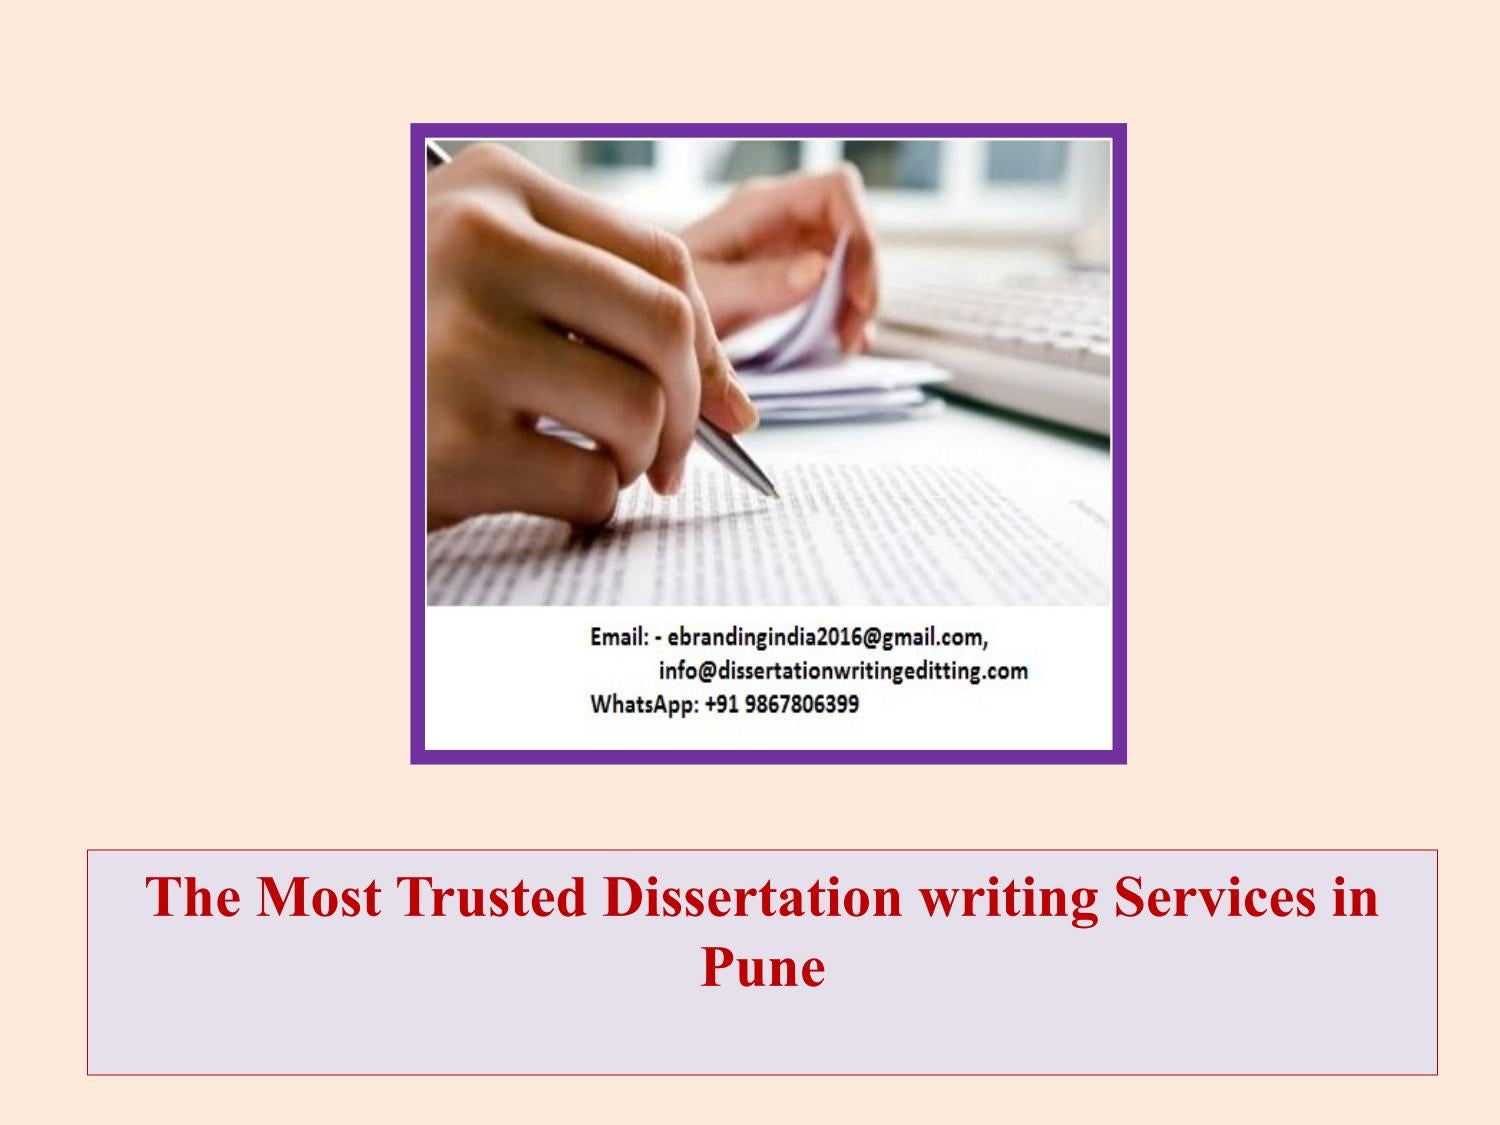 A Dissertation Writing Service Par Excellence